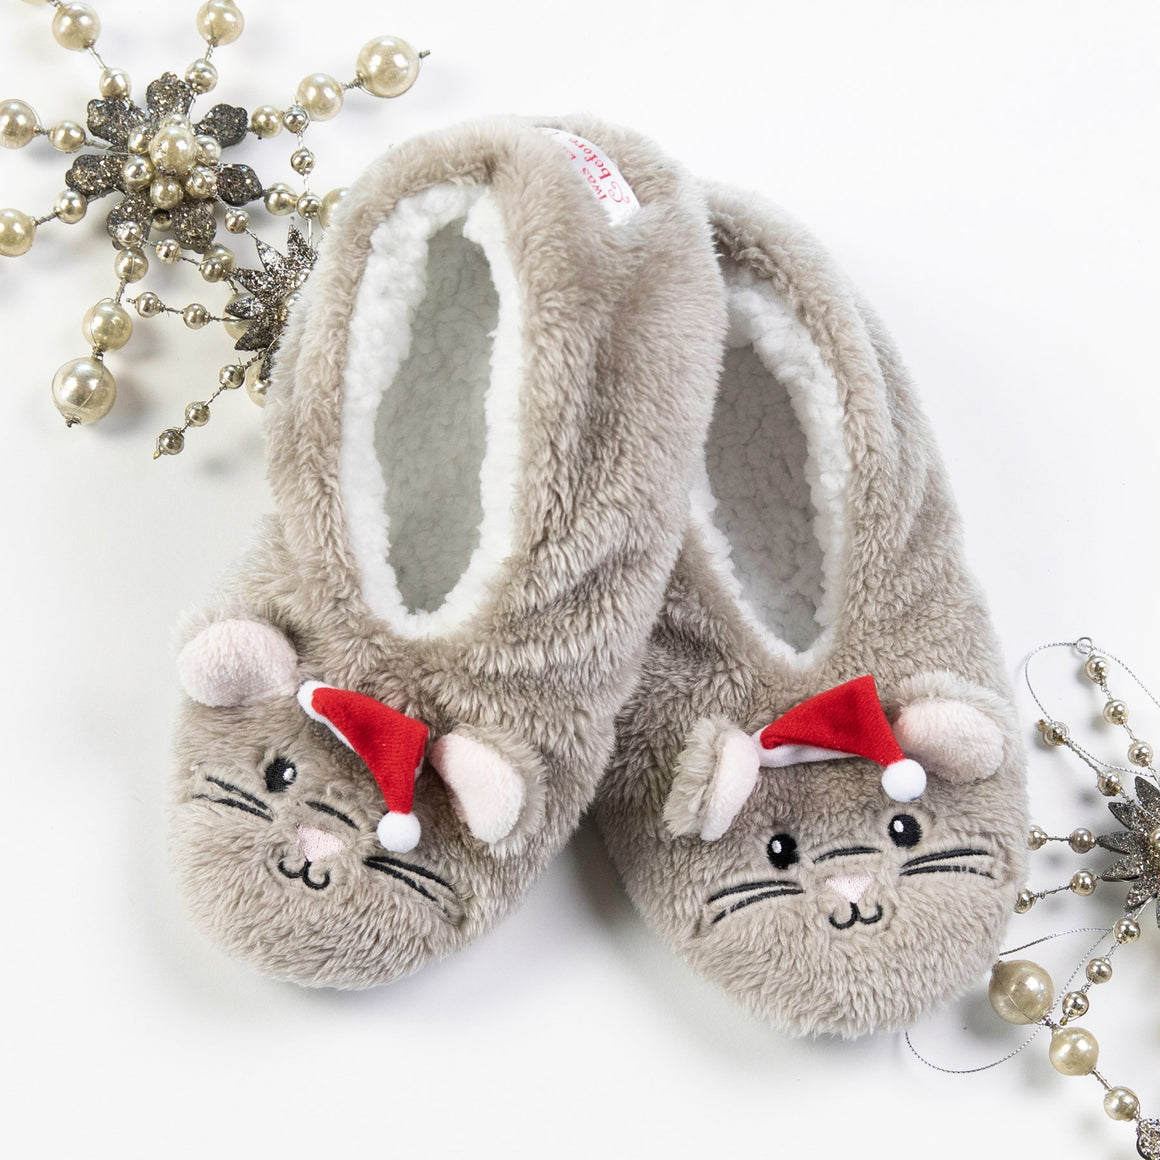 Footsie Sock Slippers- 'Twas the Night Before Christmas